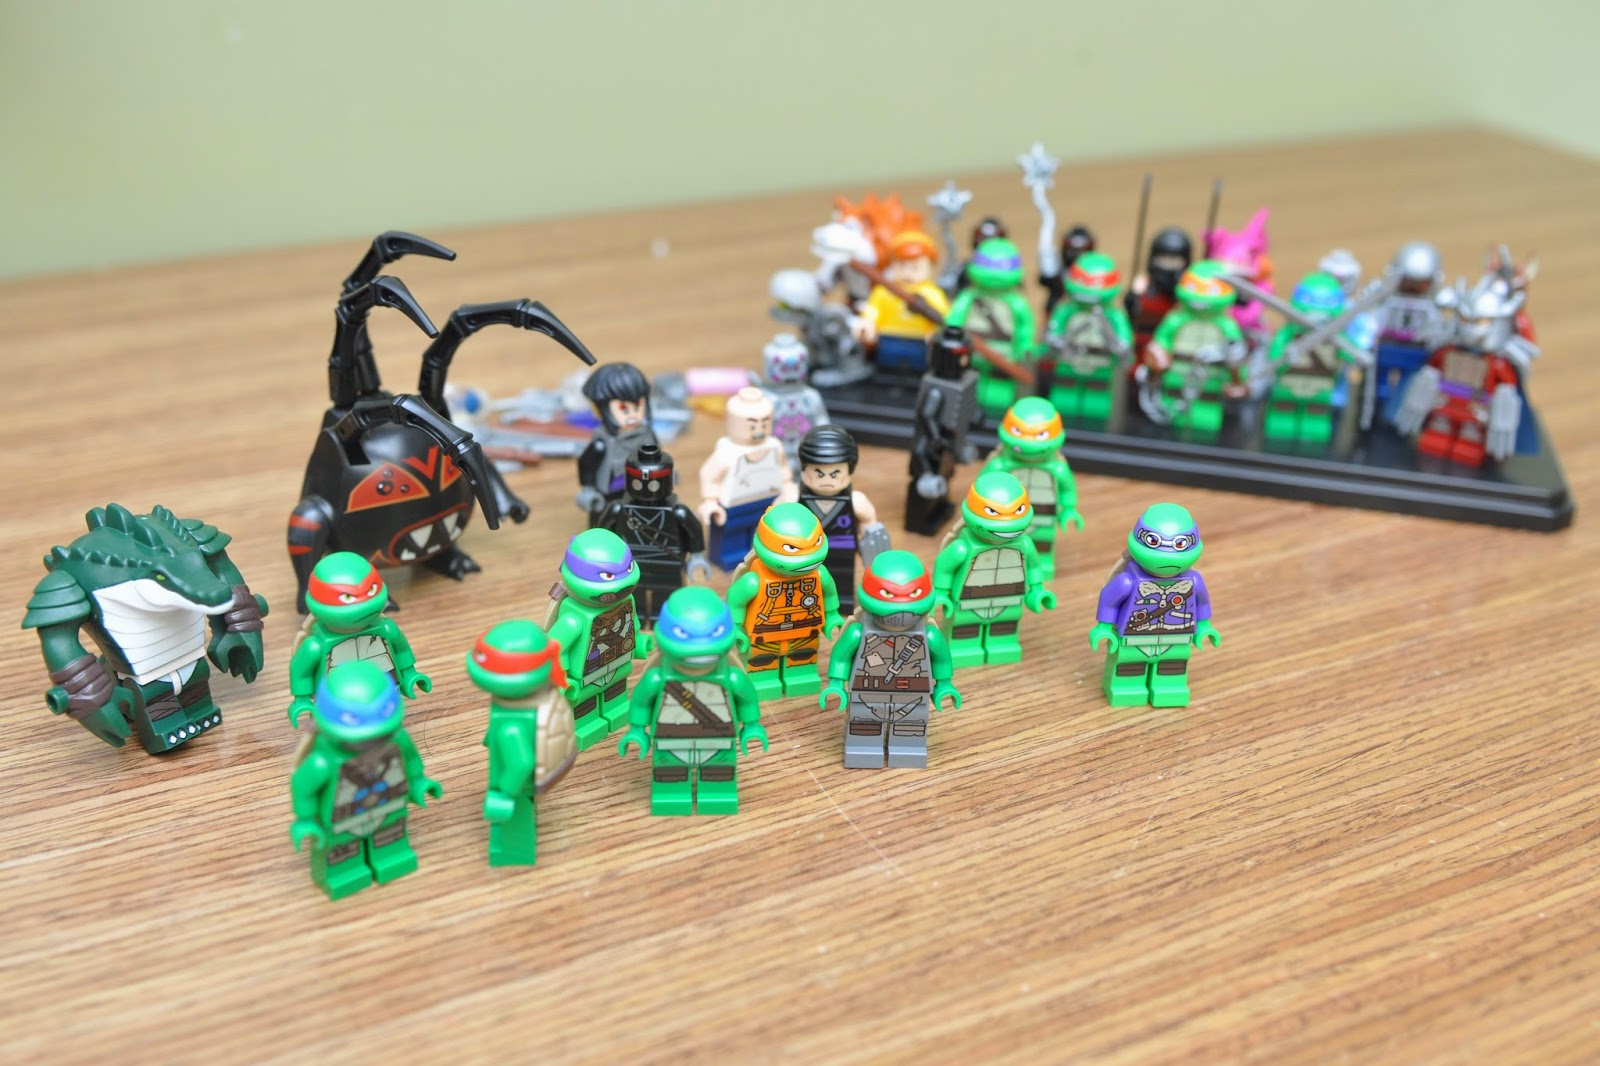 Lego Teenage Ninja Turtles Toys : My brick store teenage mutant ninja turtles lego